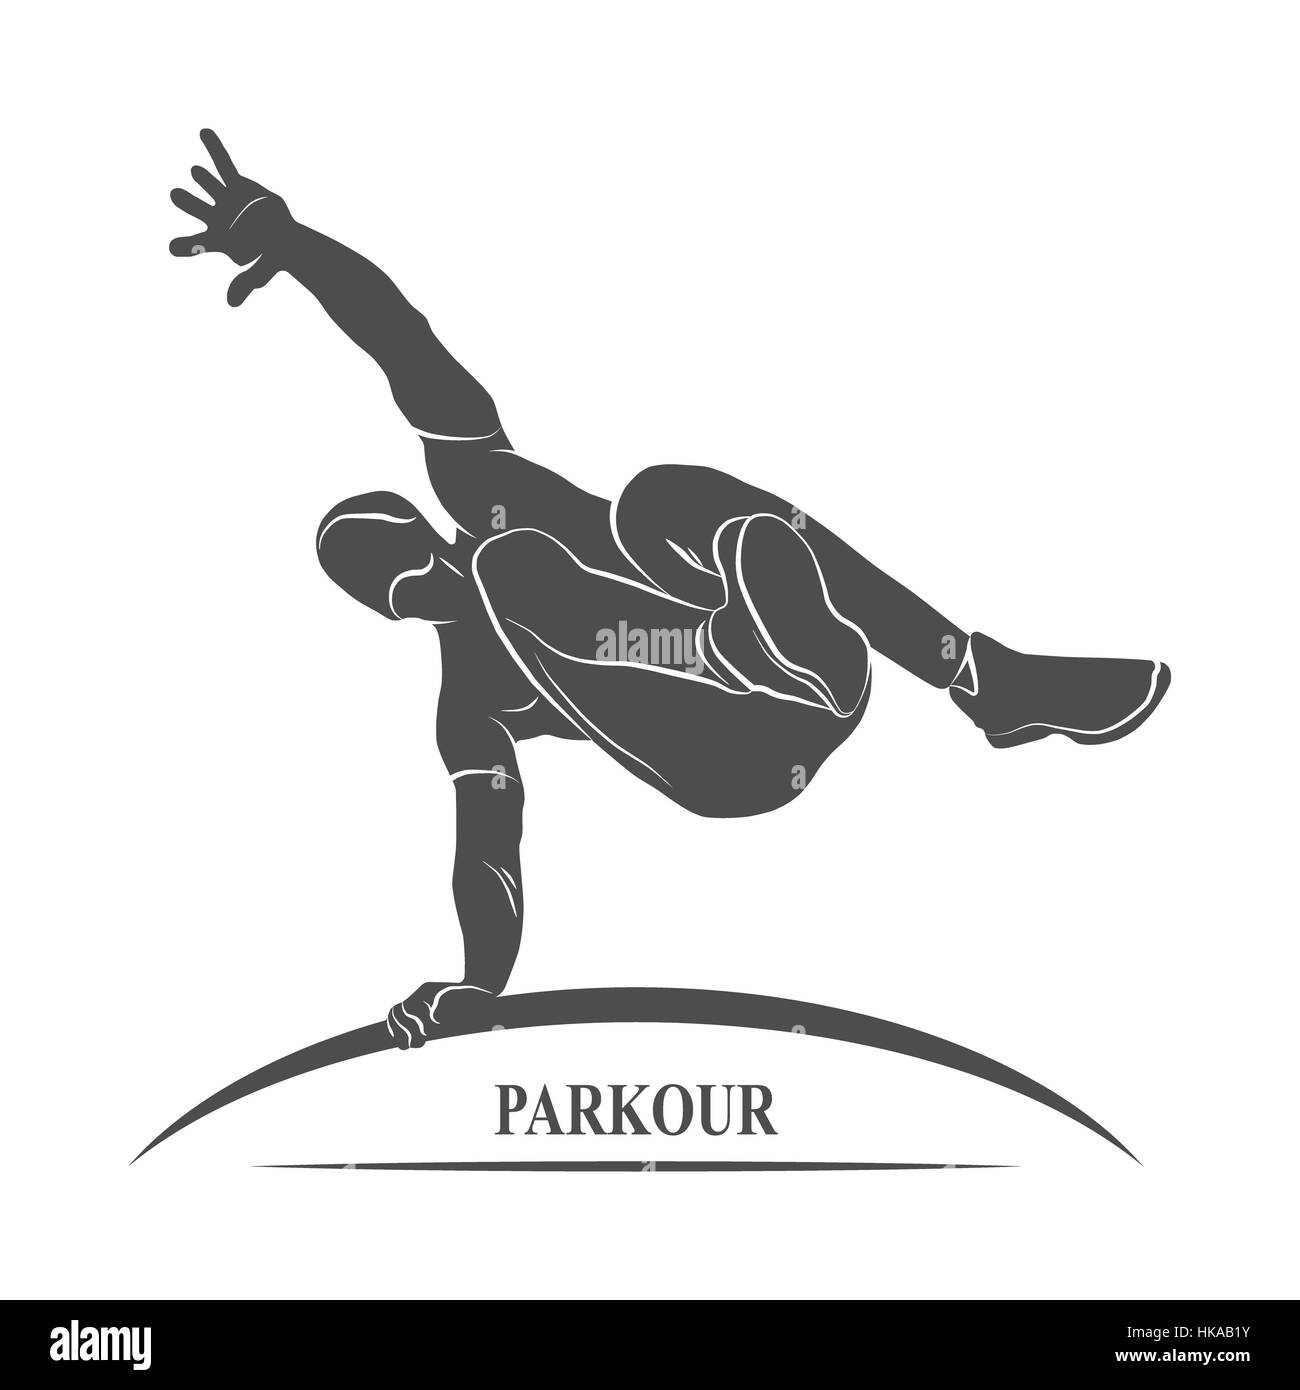 Icon man jumping outdoor parkour. Photo illustration. - Stock Image